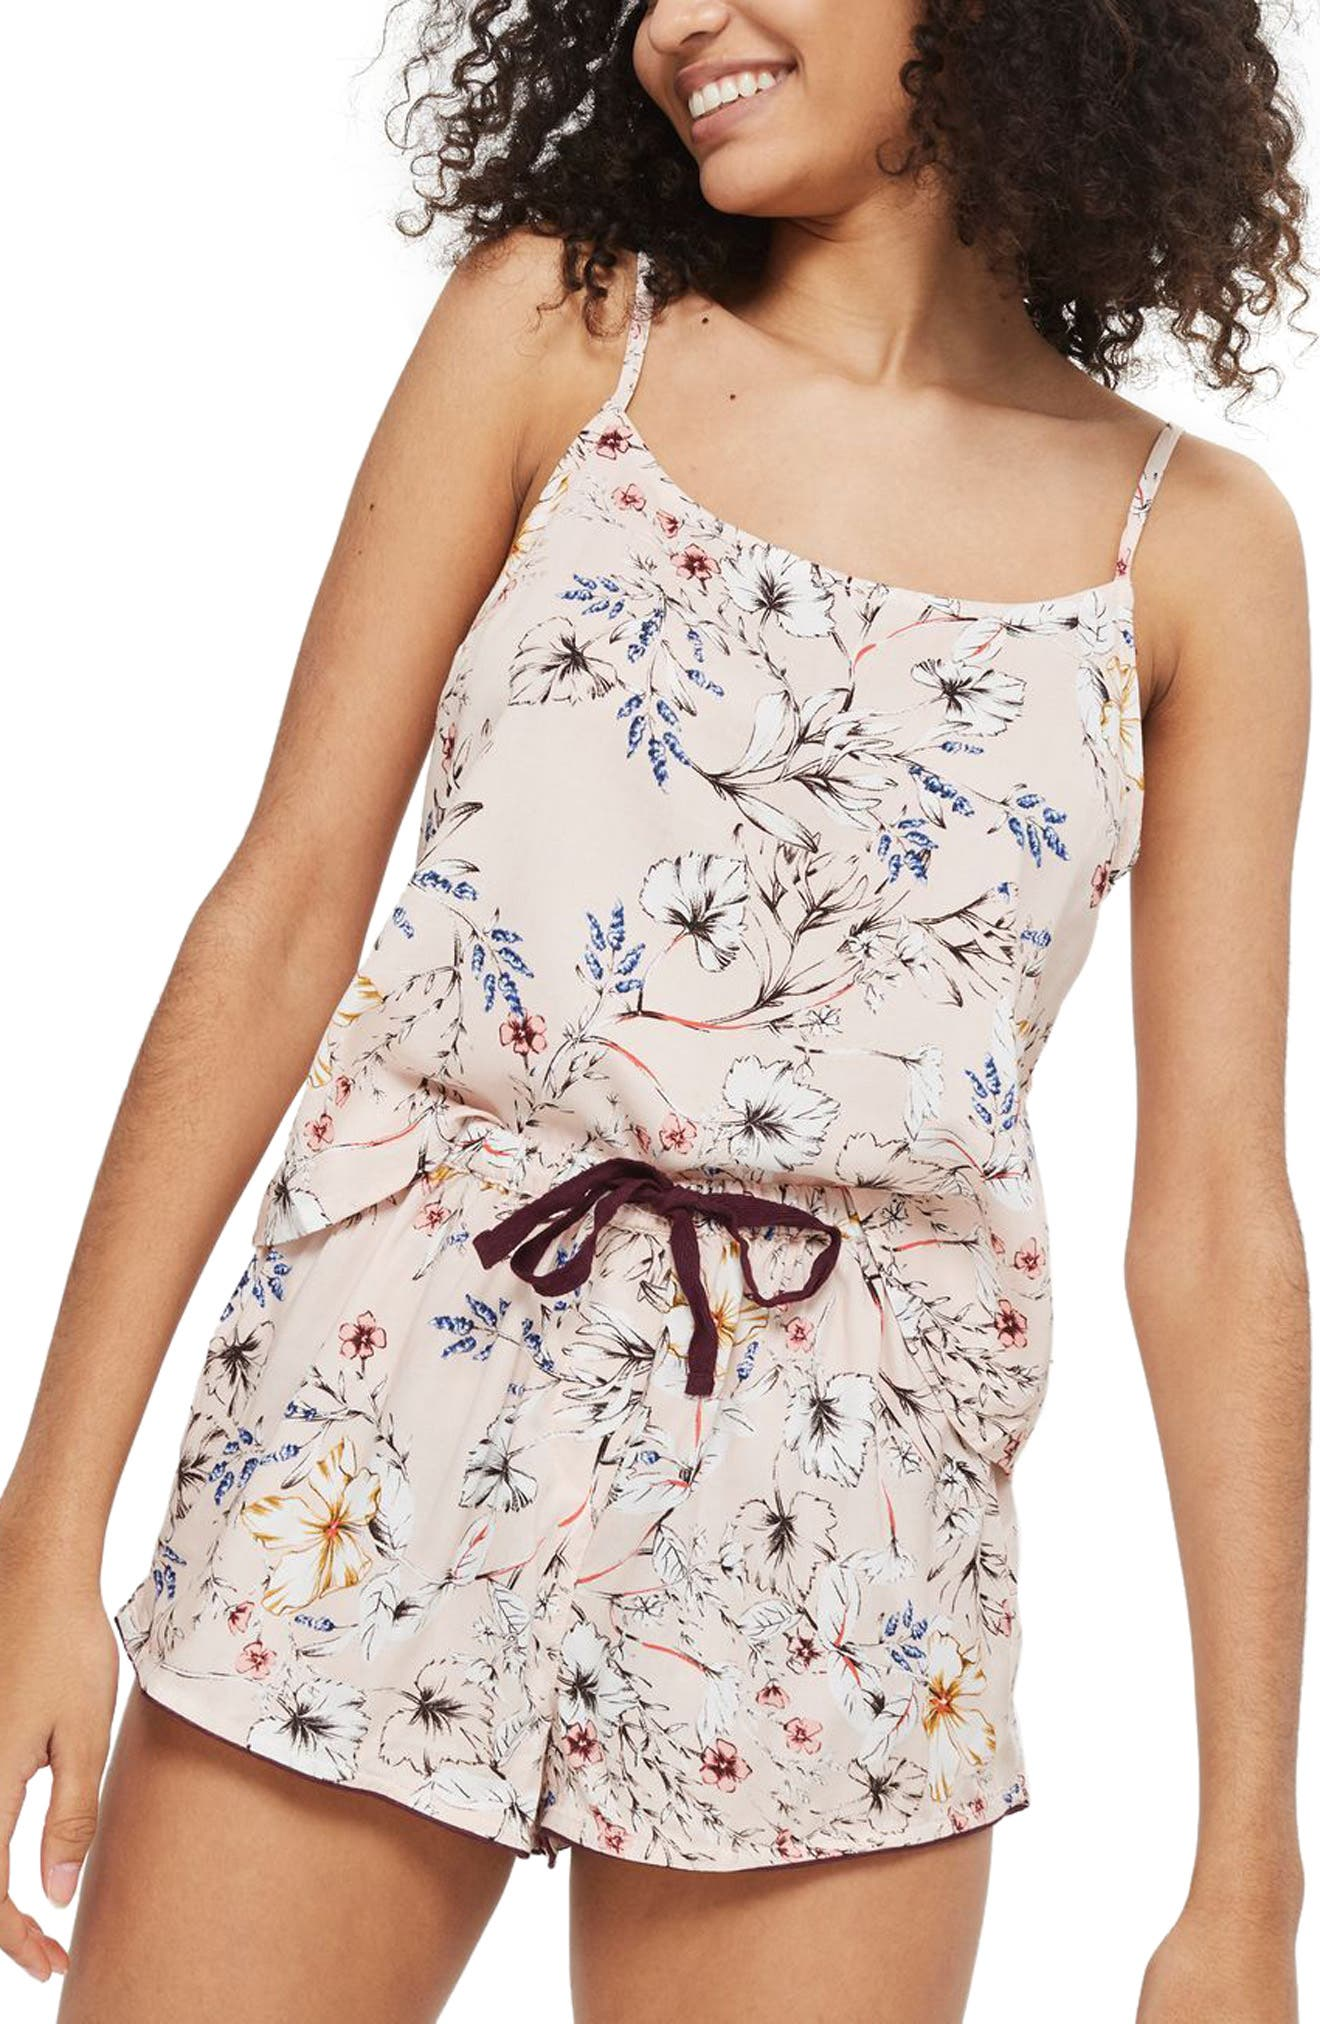 Sketchy Floral Camisole,                             Main thumbnail 1, color,                             650